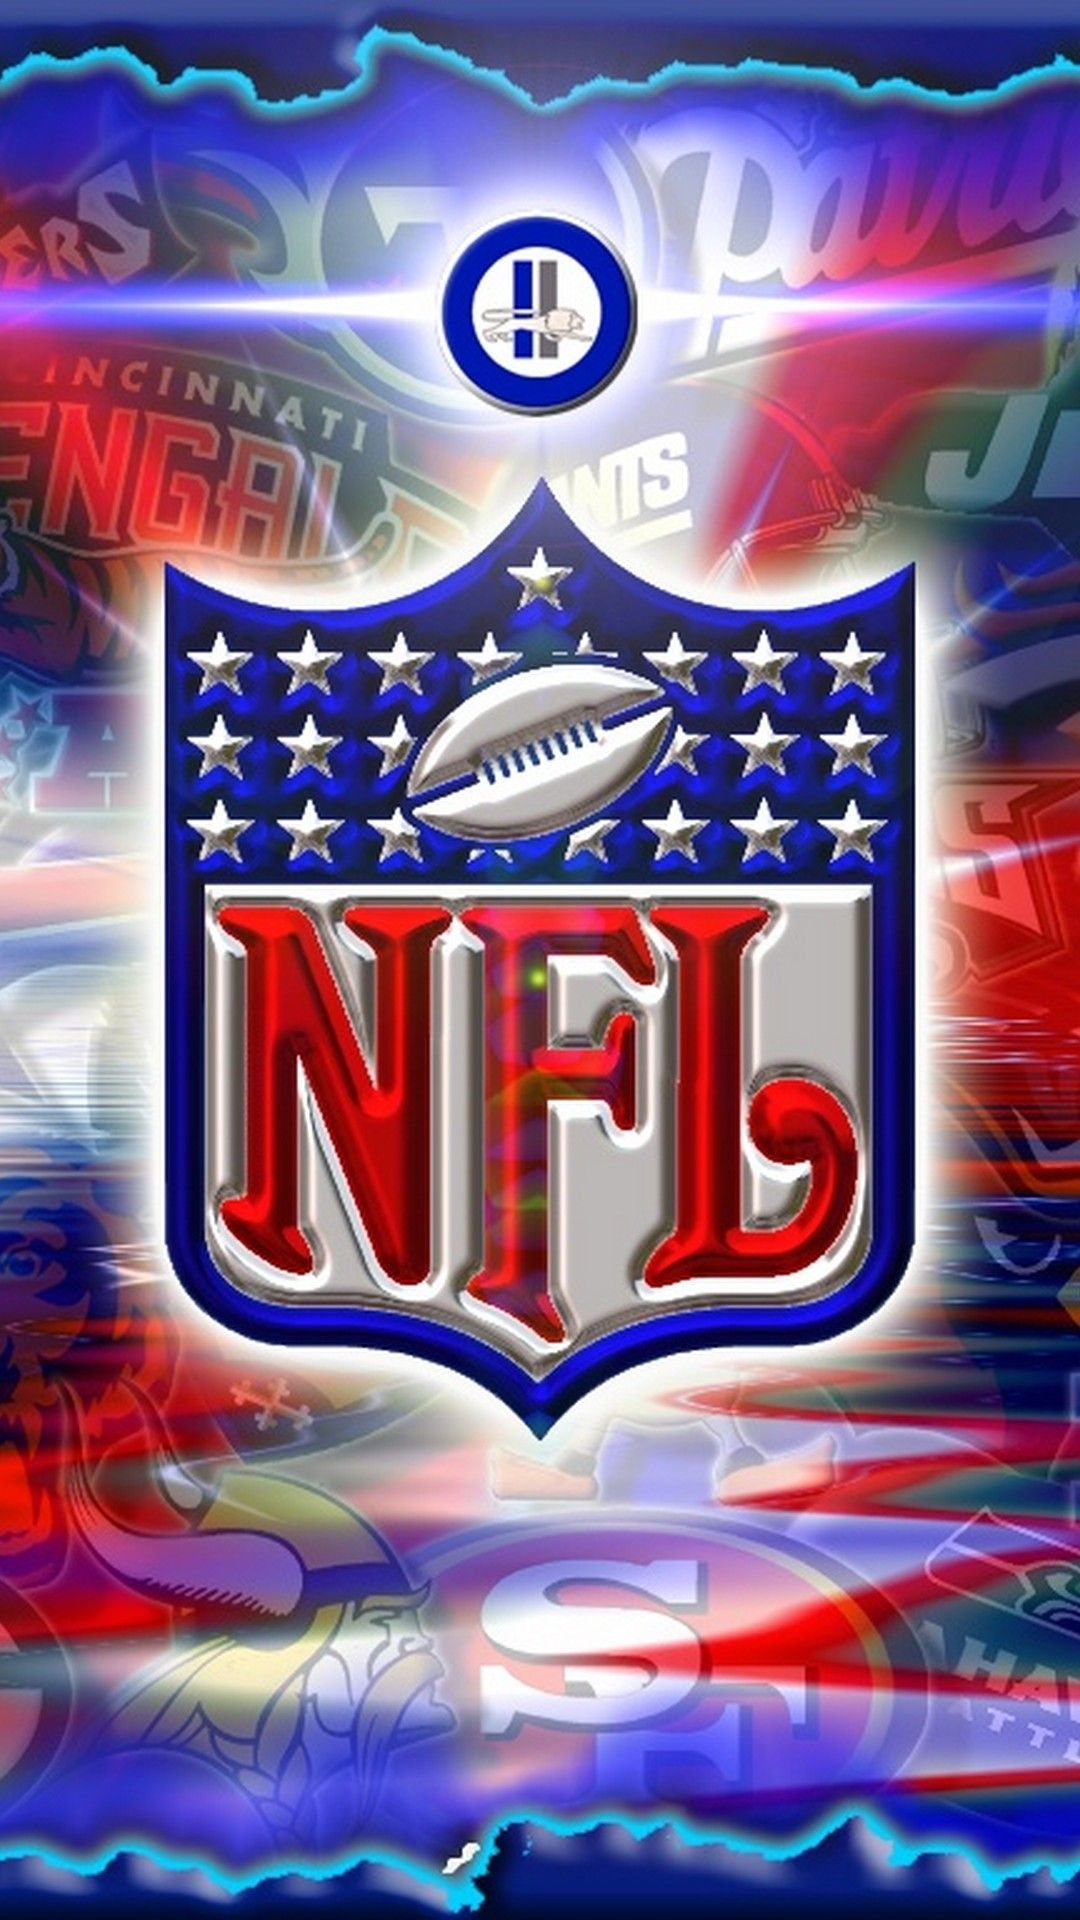 NFL iPhone 8 Wallpaper Football wallpaper, Nfl football